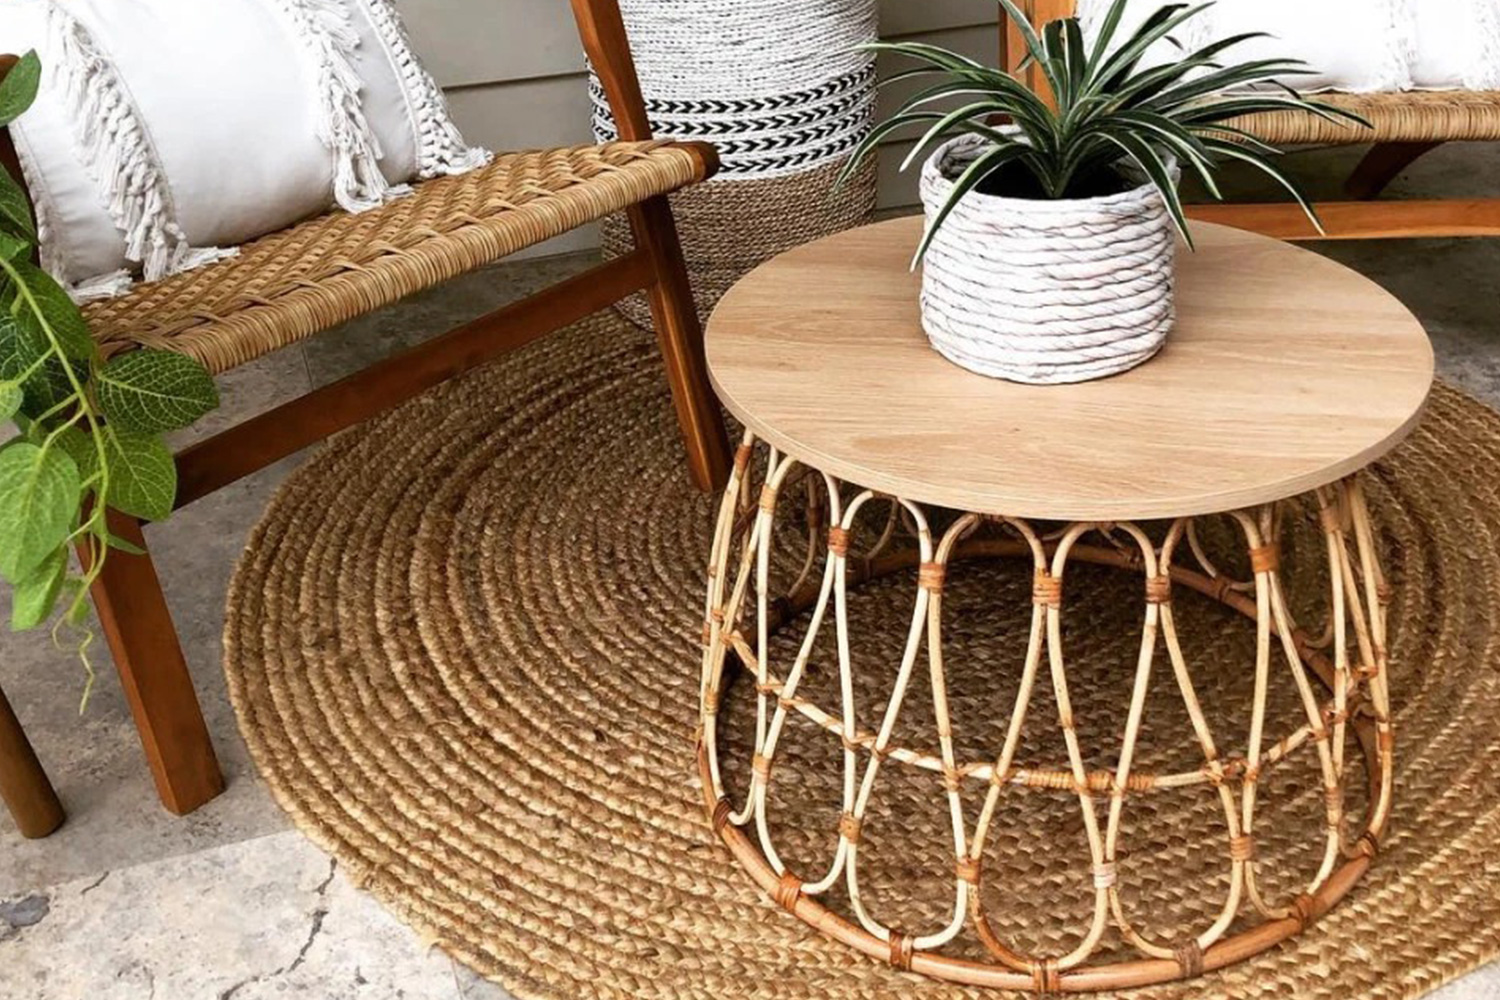 Rattan Ikea Mum Uses An Upside Down 25 Ikea Laundry Basket To Create A